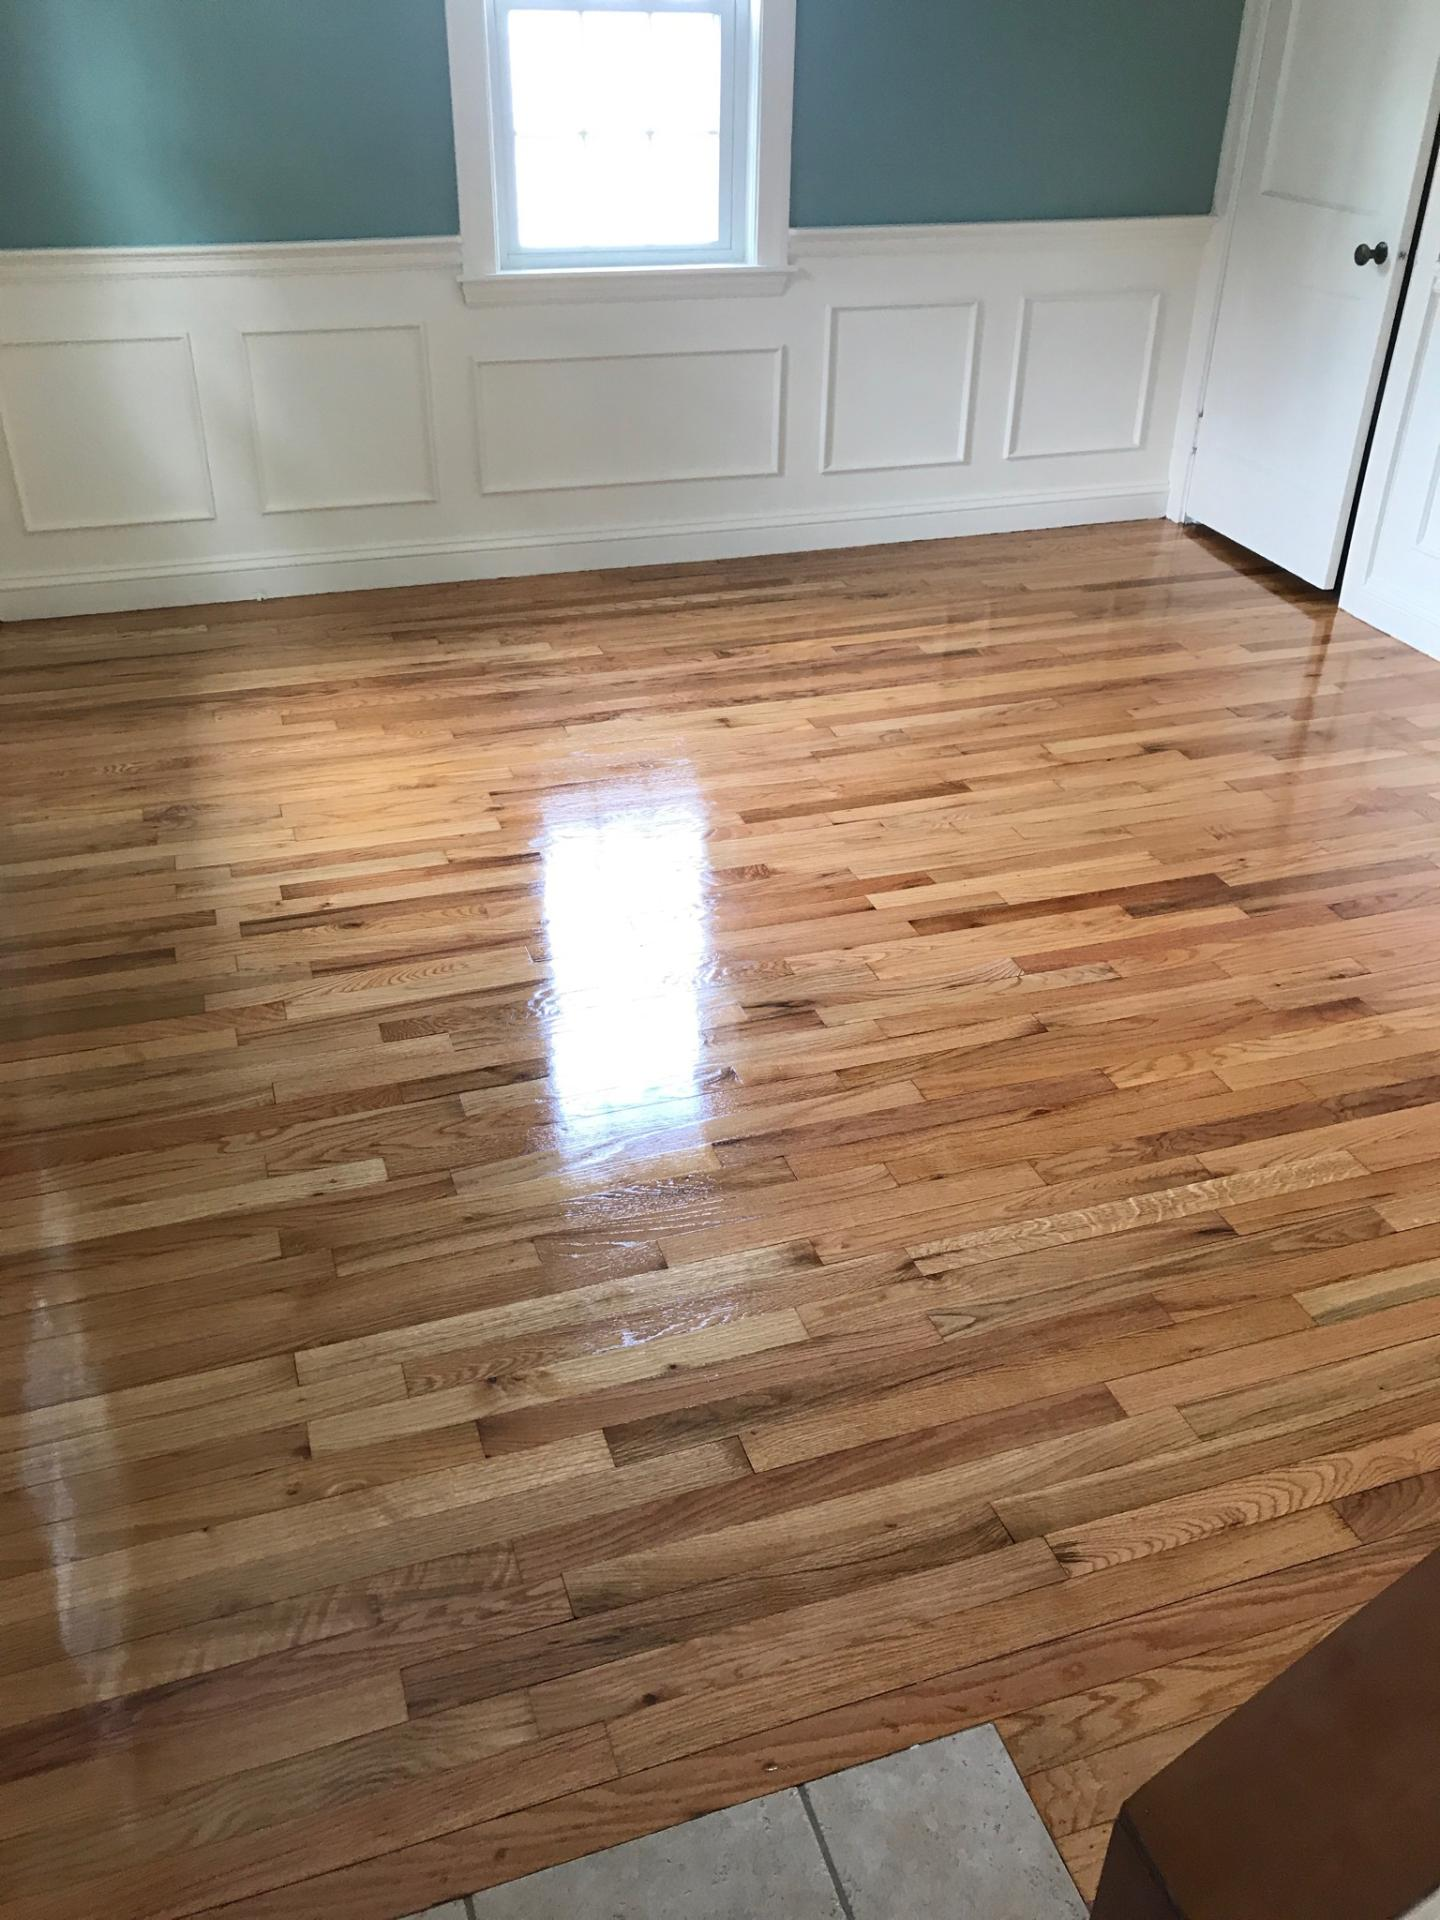 Red oak hardwood floors with a high gloss finish central for Hardwood flooring inc